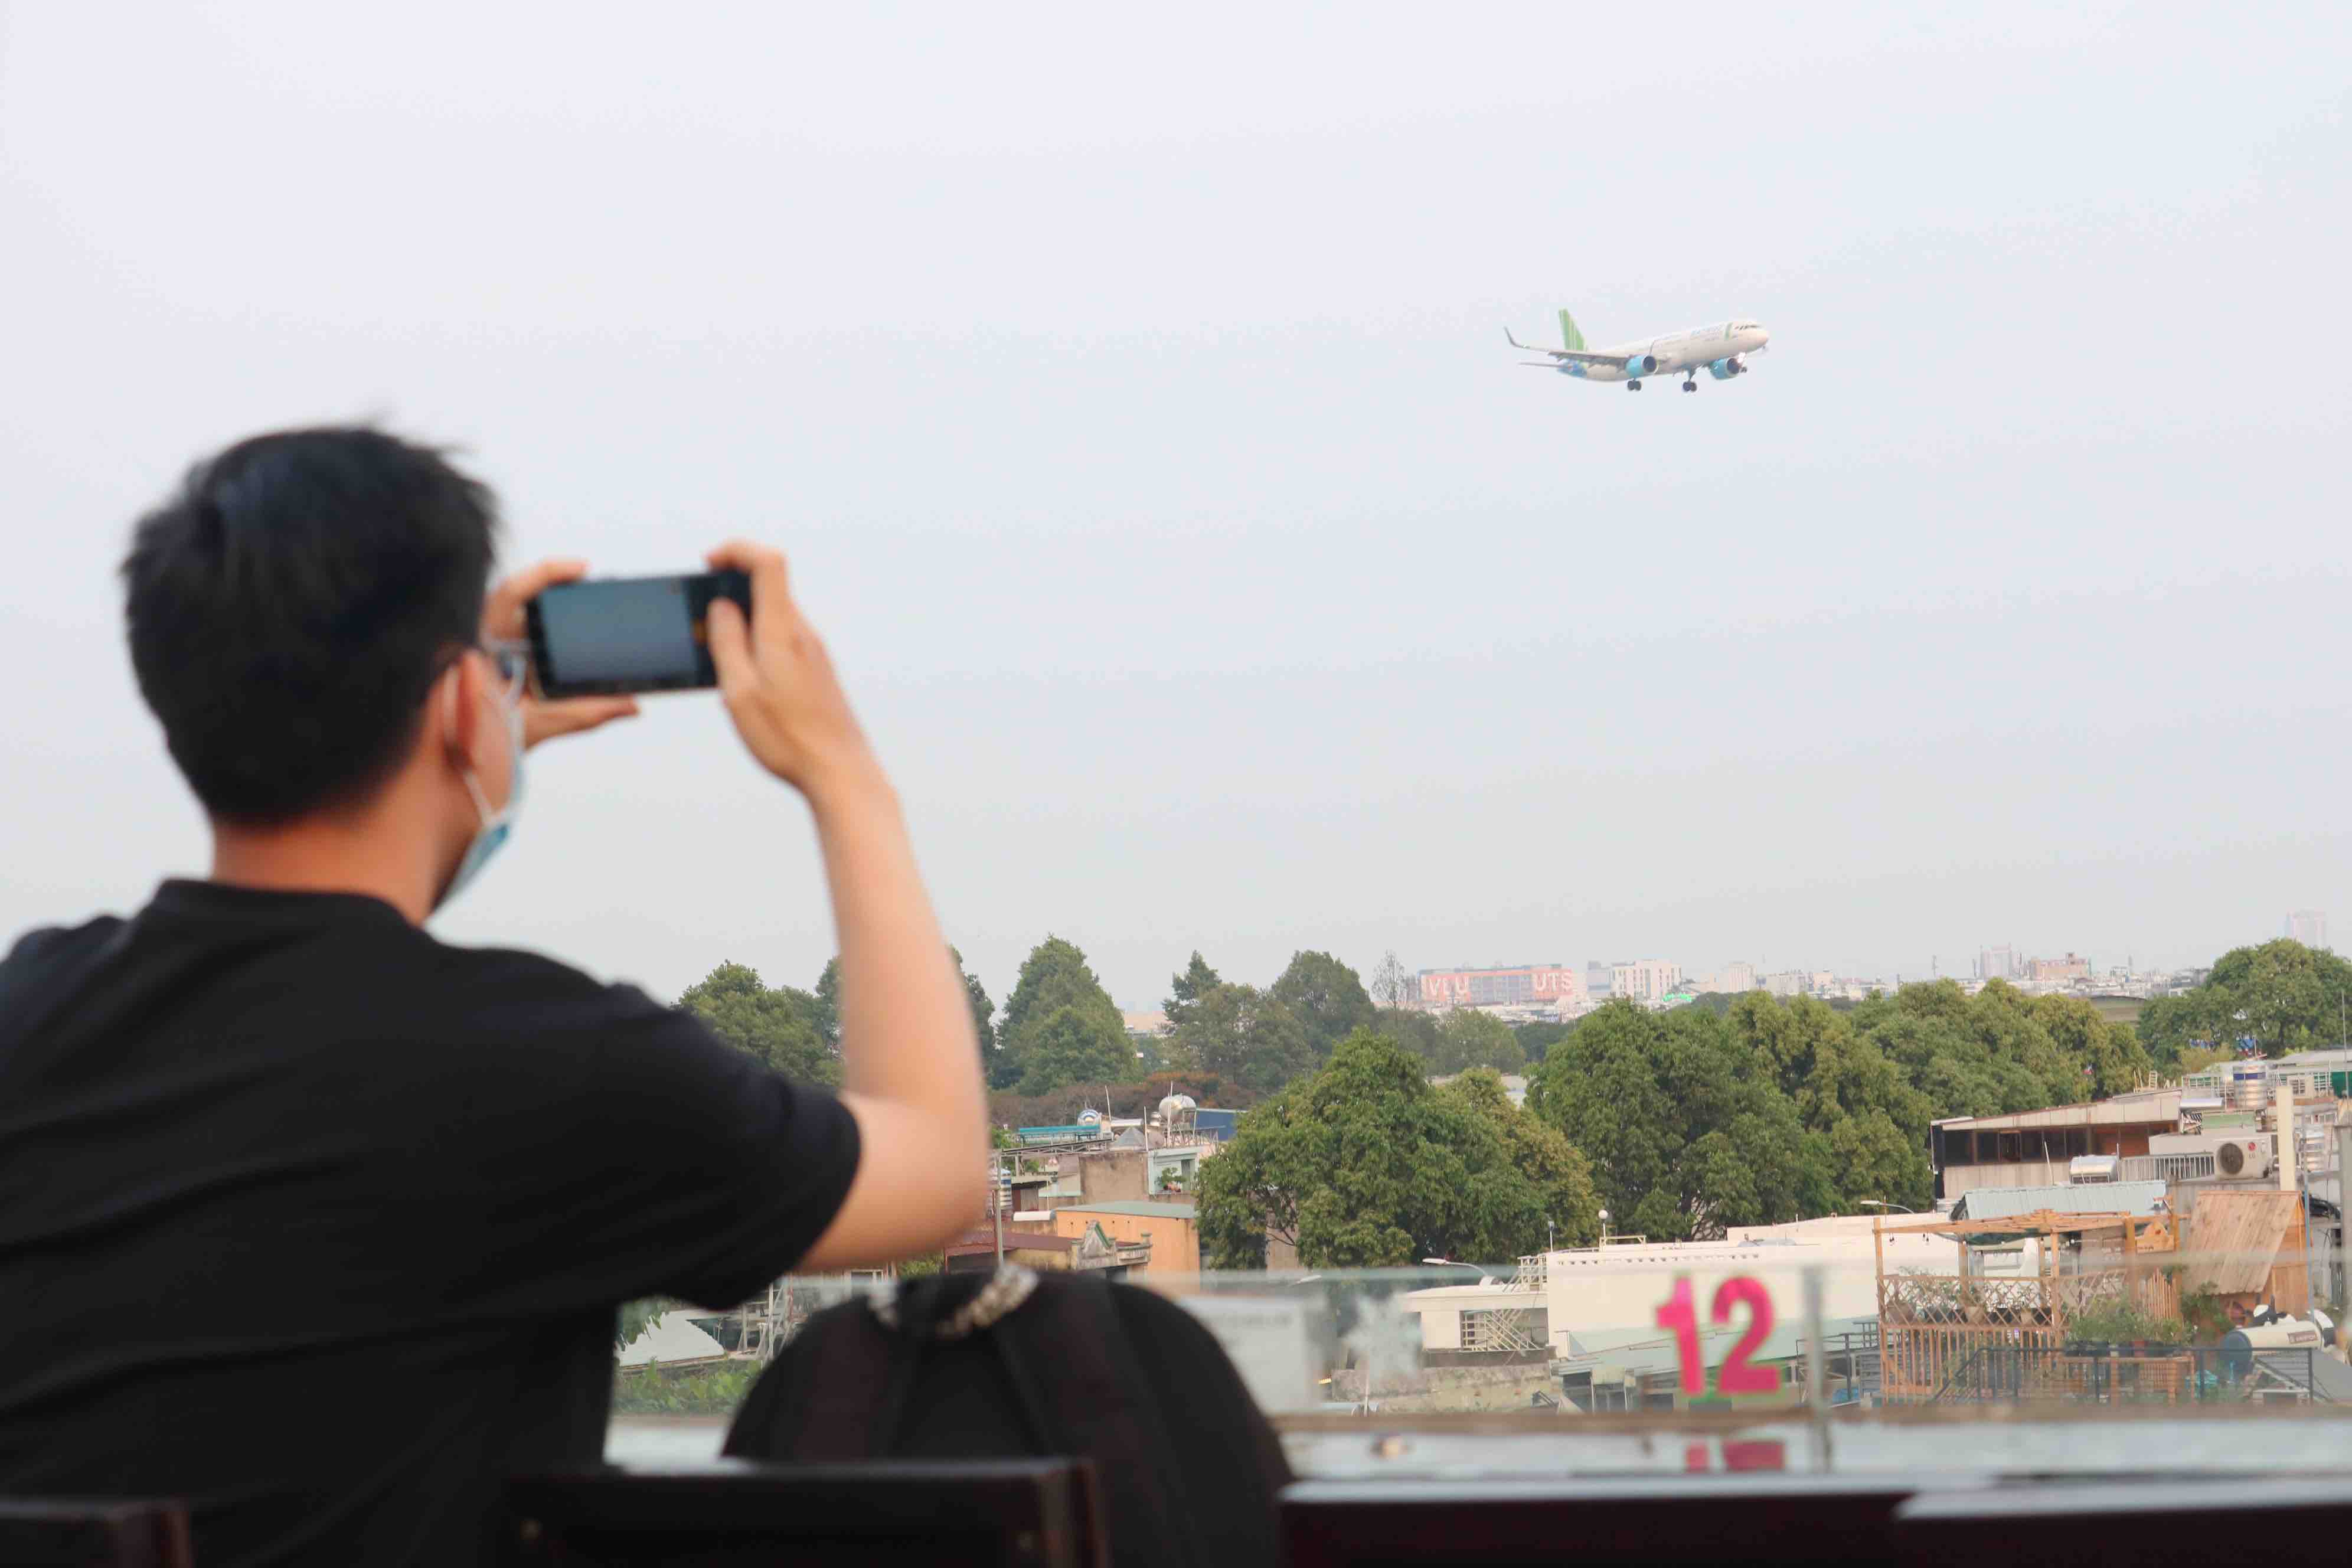 A customer photographs an airplane as it passes by at Ngam May Bay café in Go Vap District, Ho Chi Minh City. Photo: Hoang An / Tuoi Tre